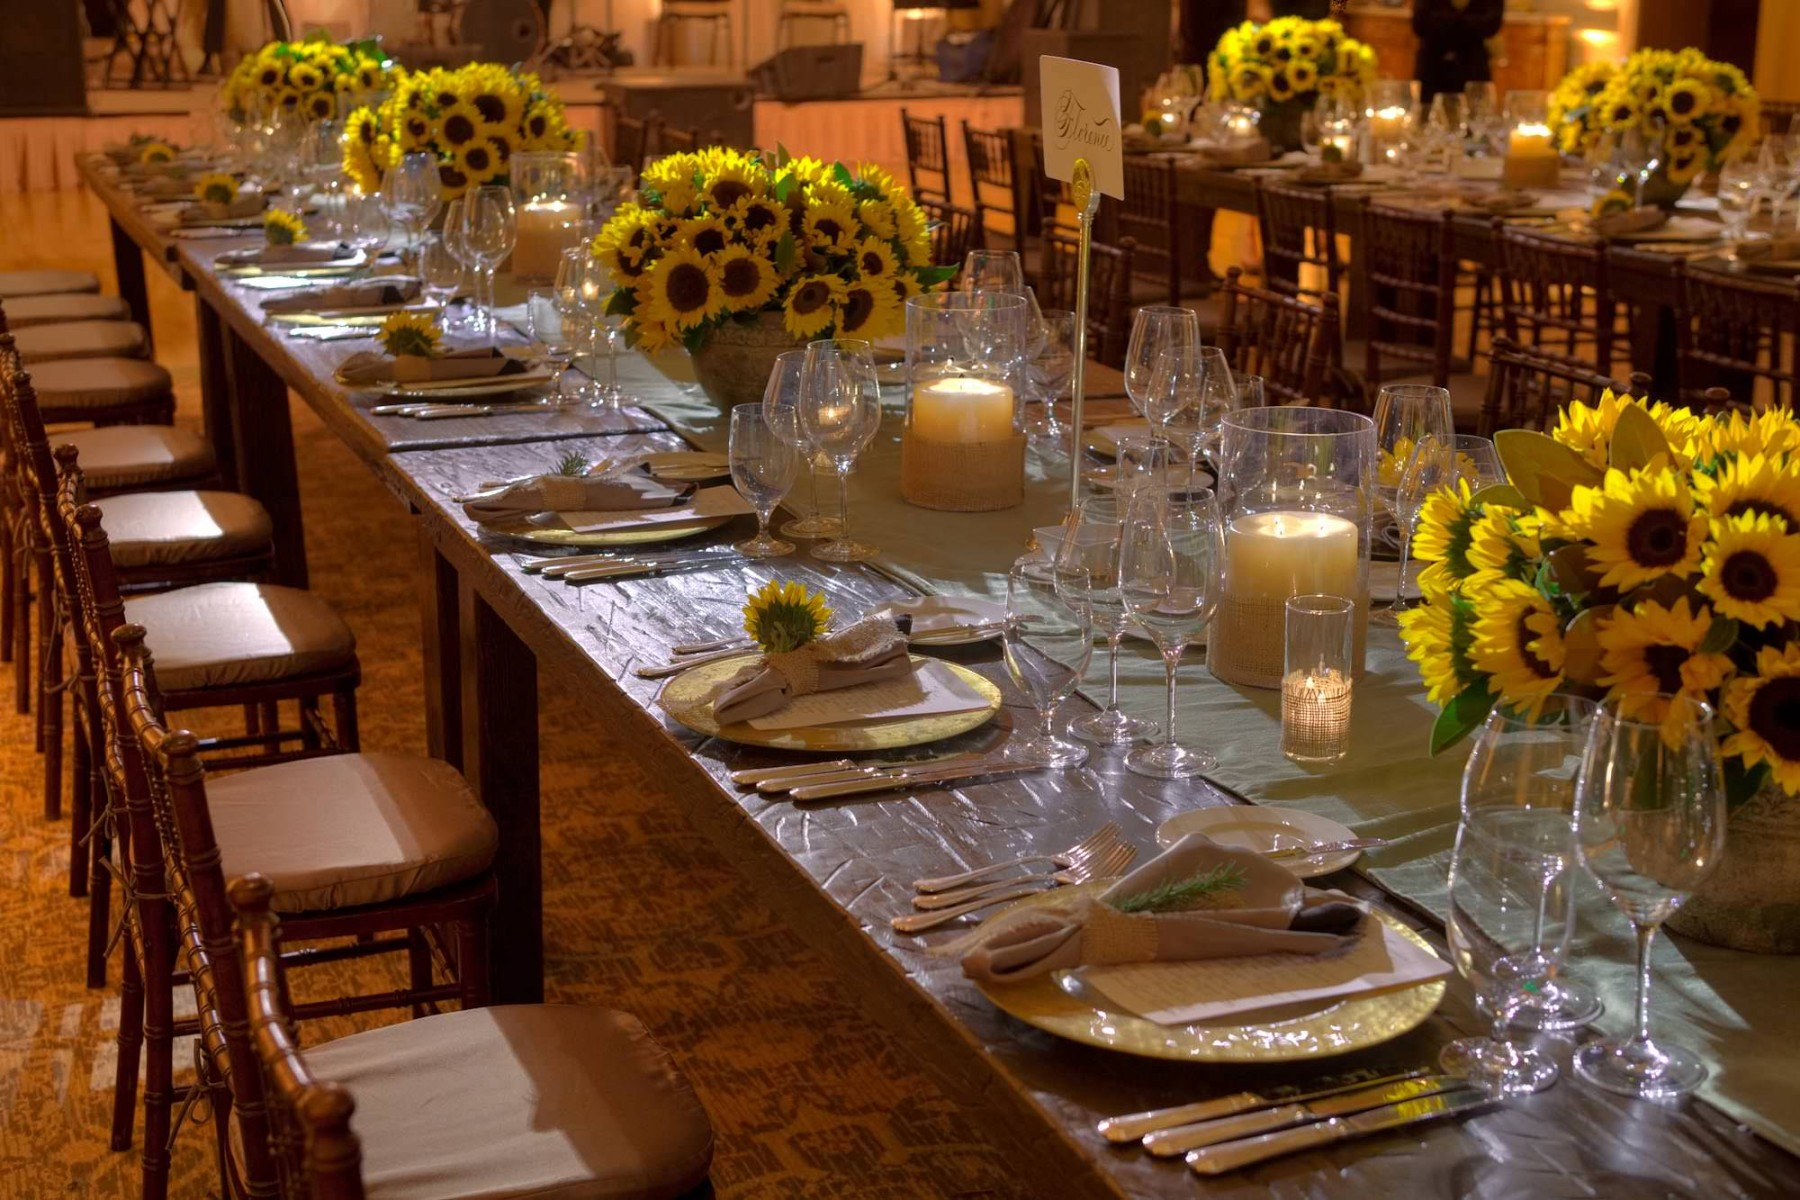 nisies-enchanted-florist-orange-county-Sunflowers-Cosentino-Rehearsal-Dinner-Pelican-Hill-Resort-event-6